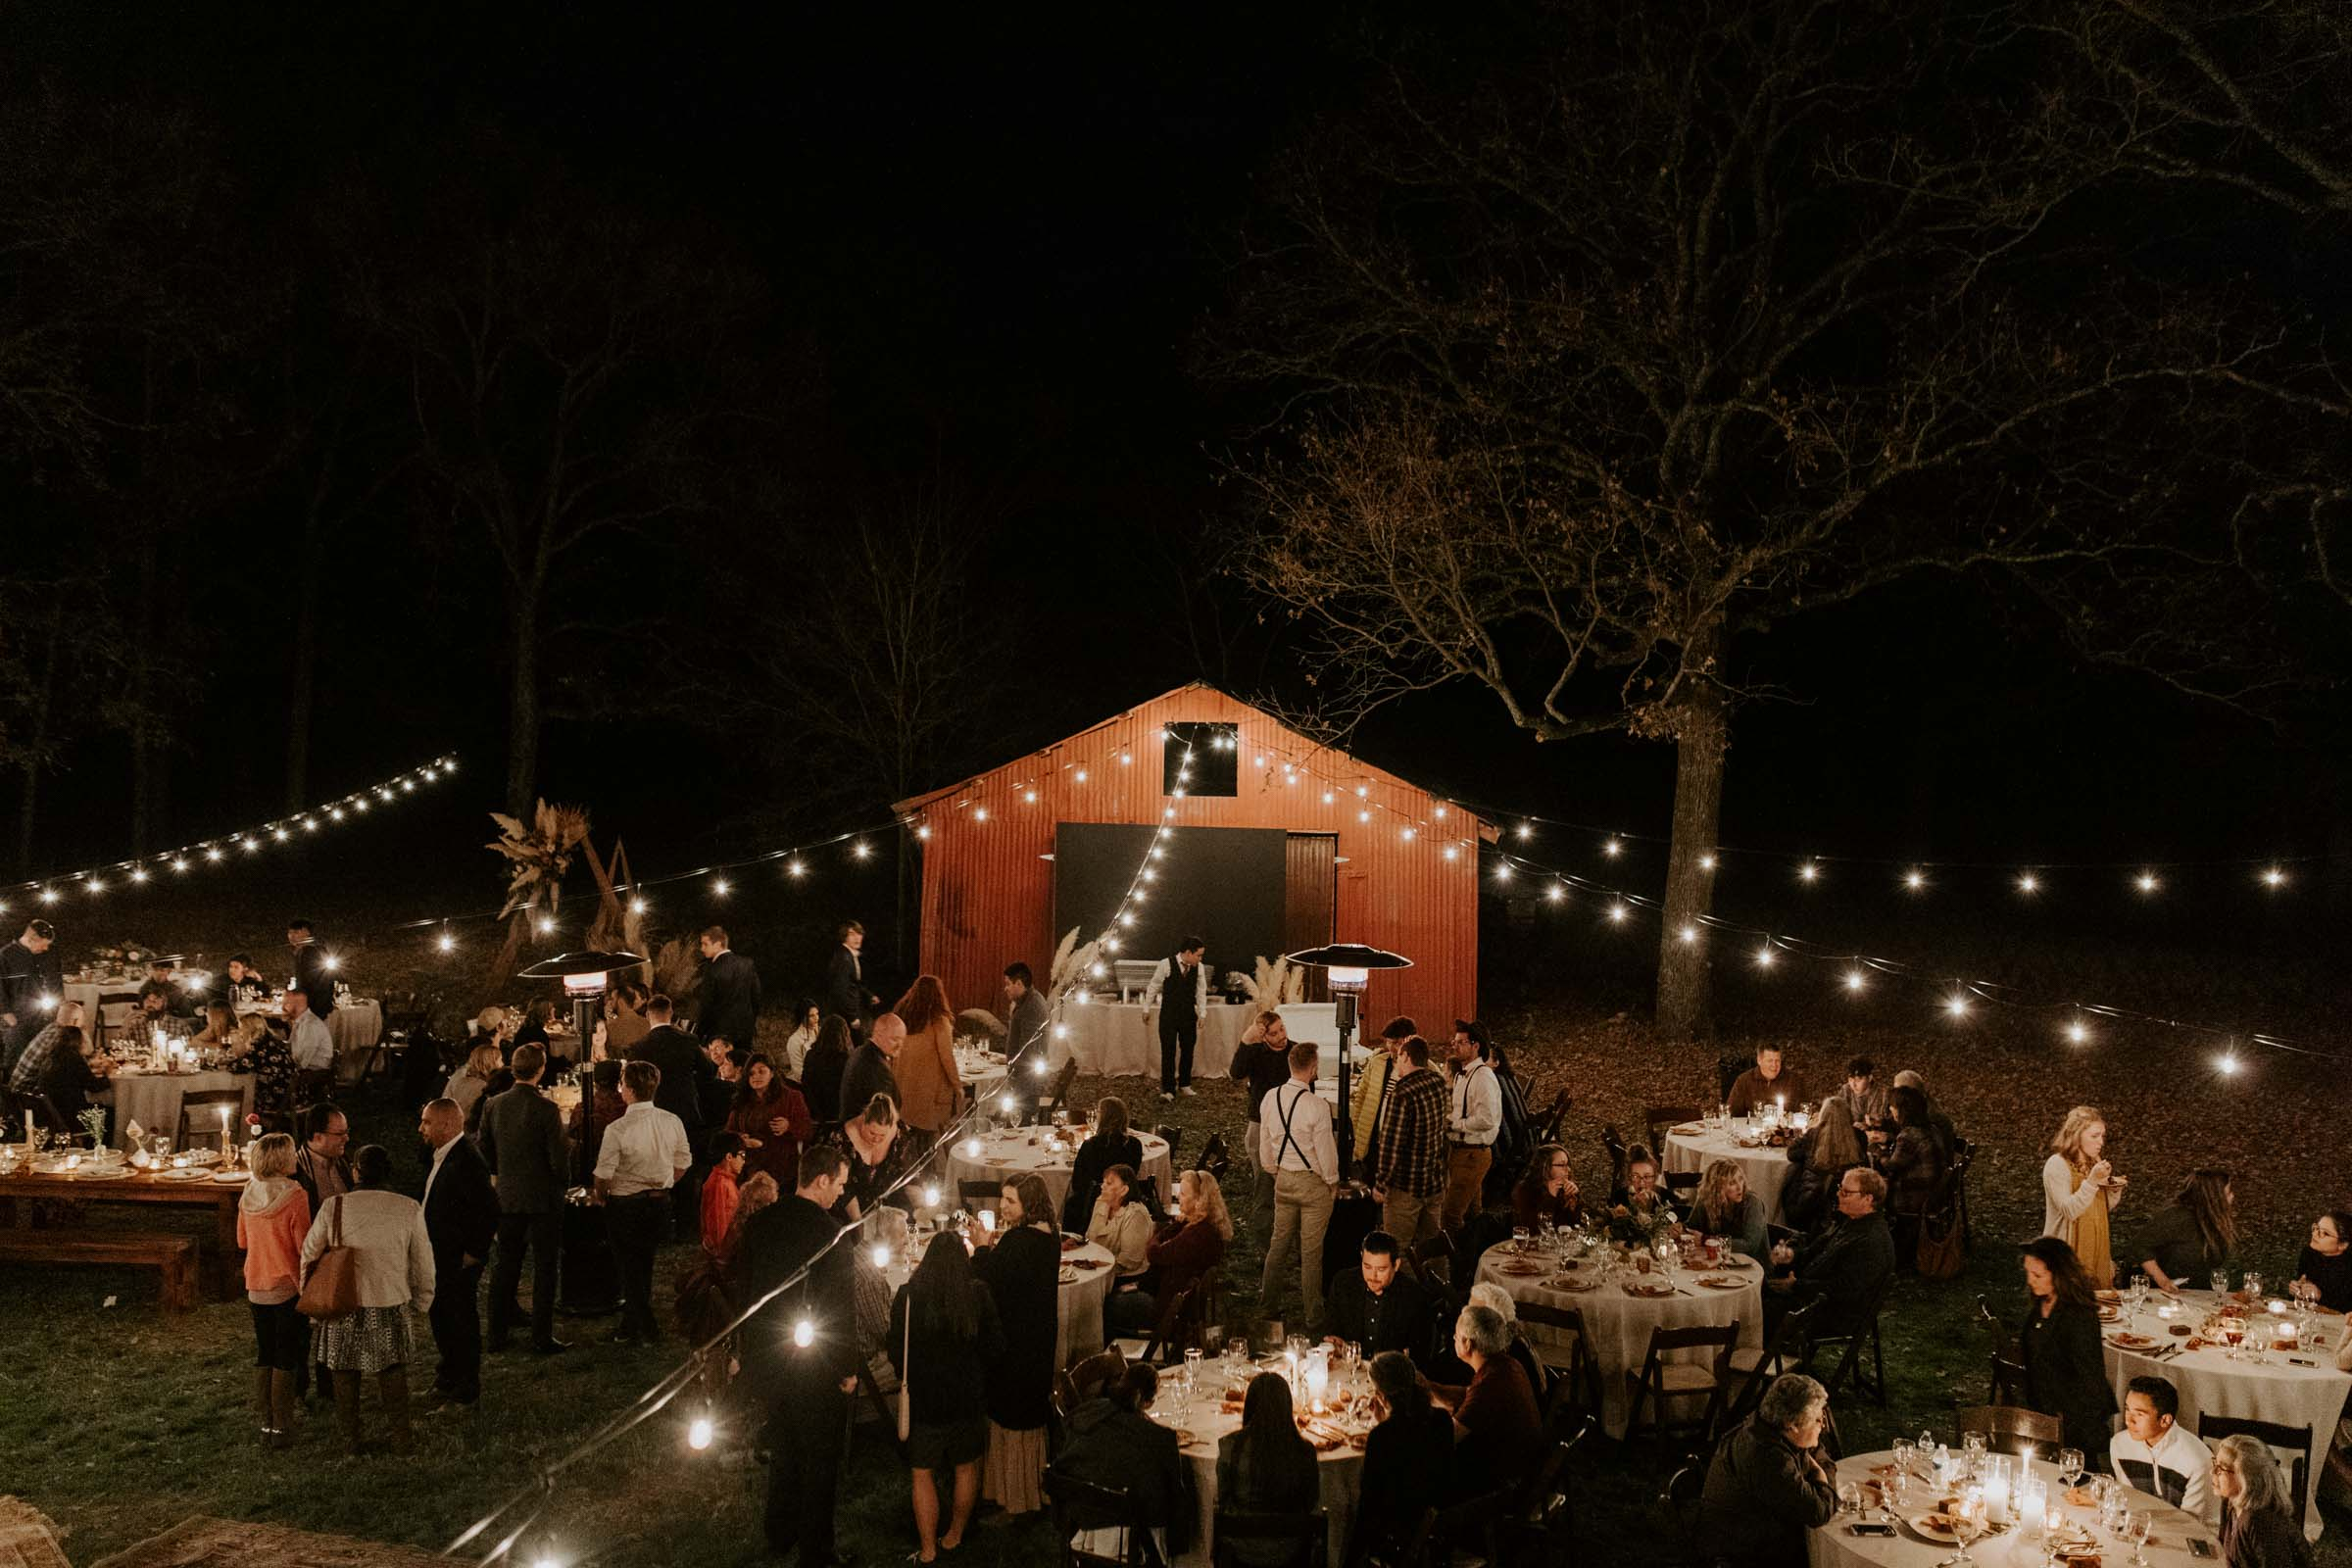 Backyard wedding string light decor with red barn central point